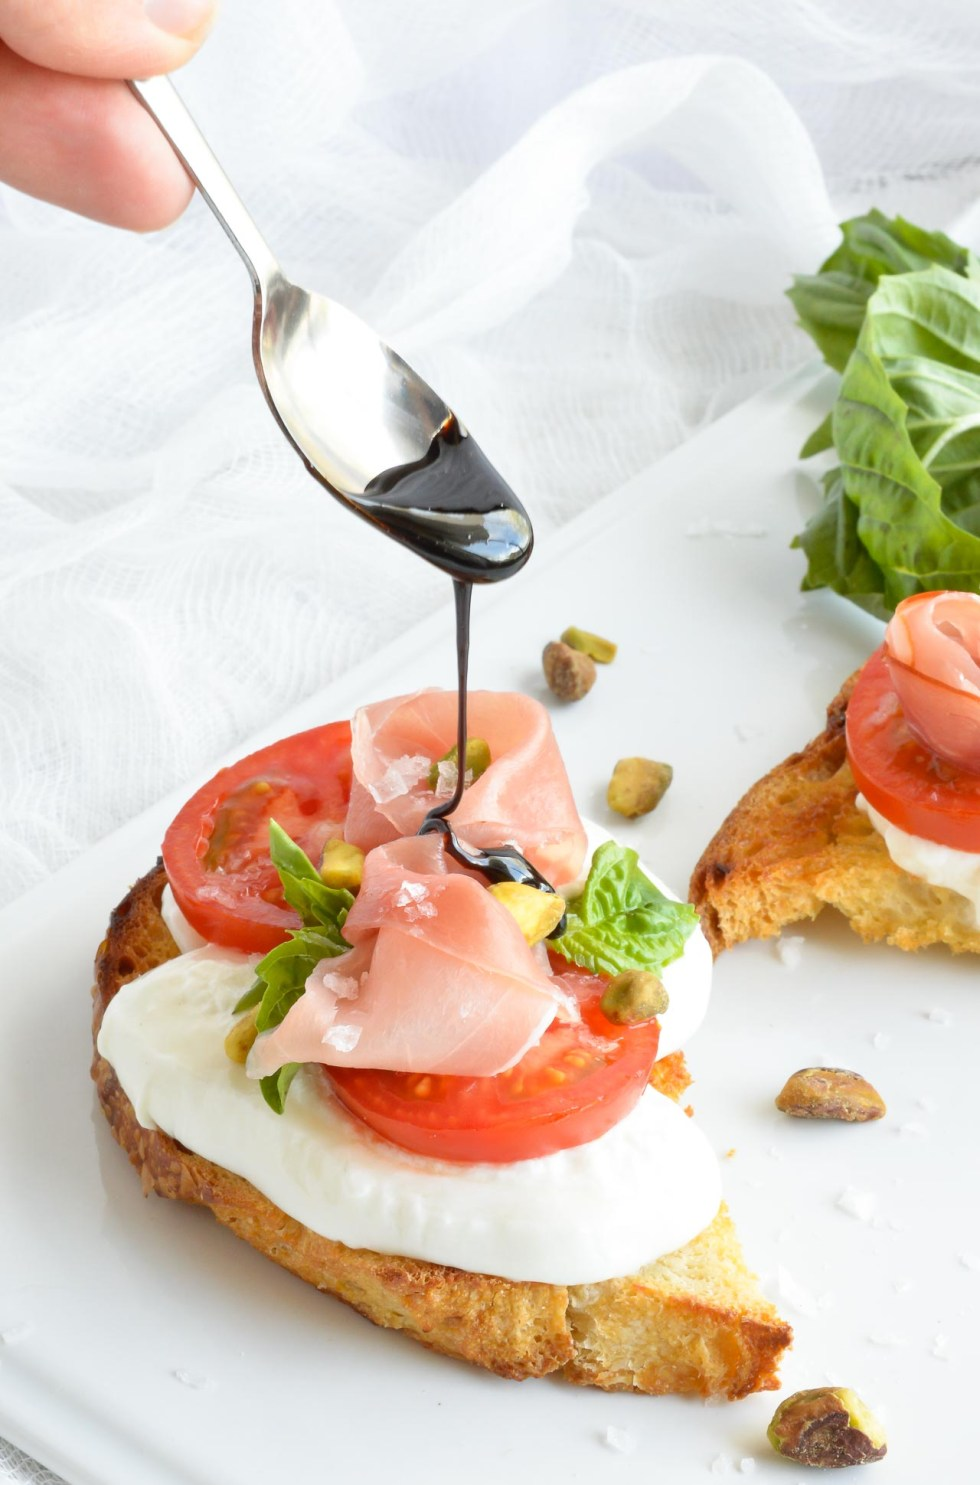 Sometimes you just need to indulge in the finer things in life. I'm showing you How To Make Balsamic Glaze for the Ultimate Sandwich. The most amazing ingredients come together in this simple yet fancy recipe. Sliced sourdough, prosciutto, burrata cheese, fresh tomatoes, basil, pistachios and balsamic vinegar glaze. Treat Yourself!